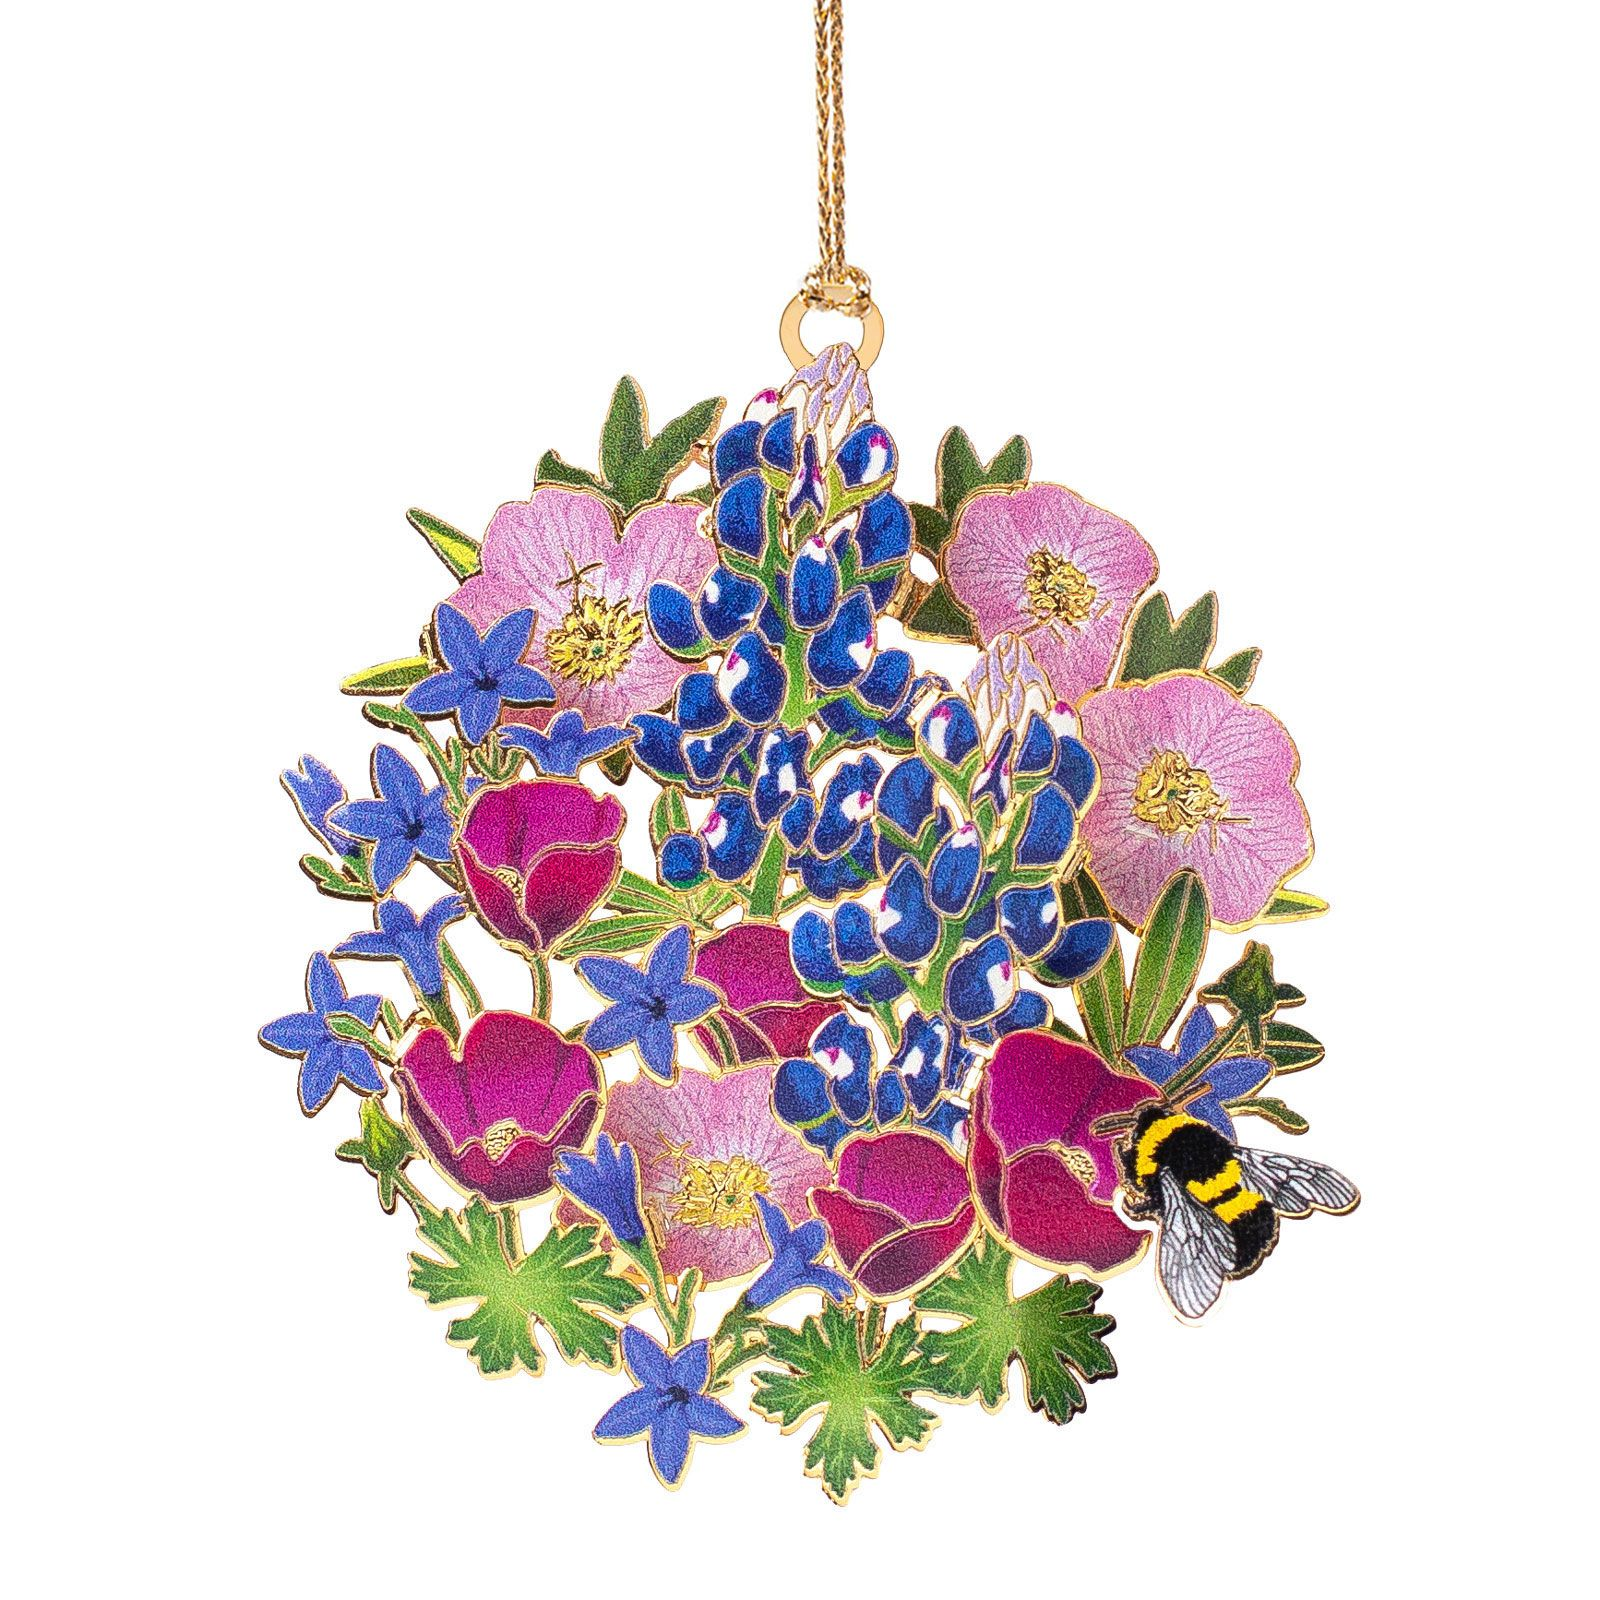 Bumble Bee with Wildflowers Ornament